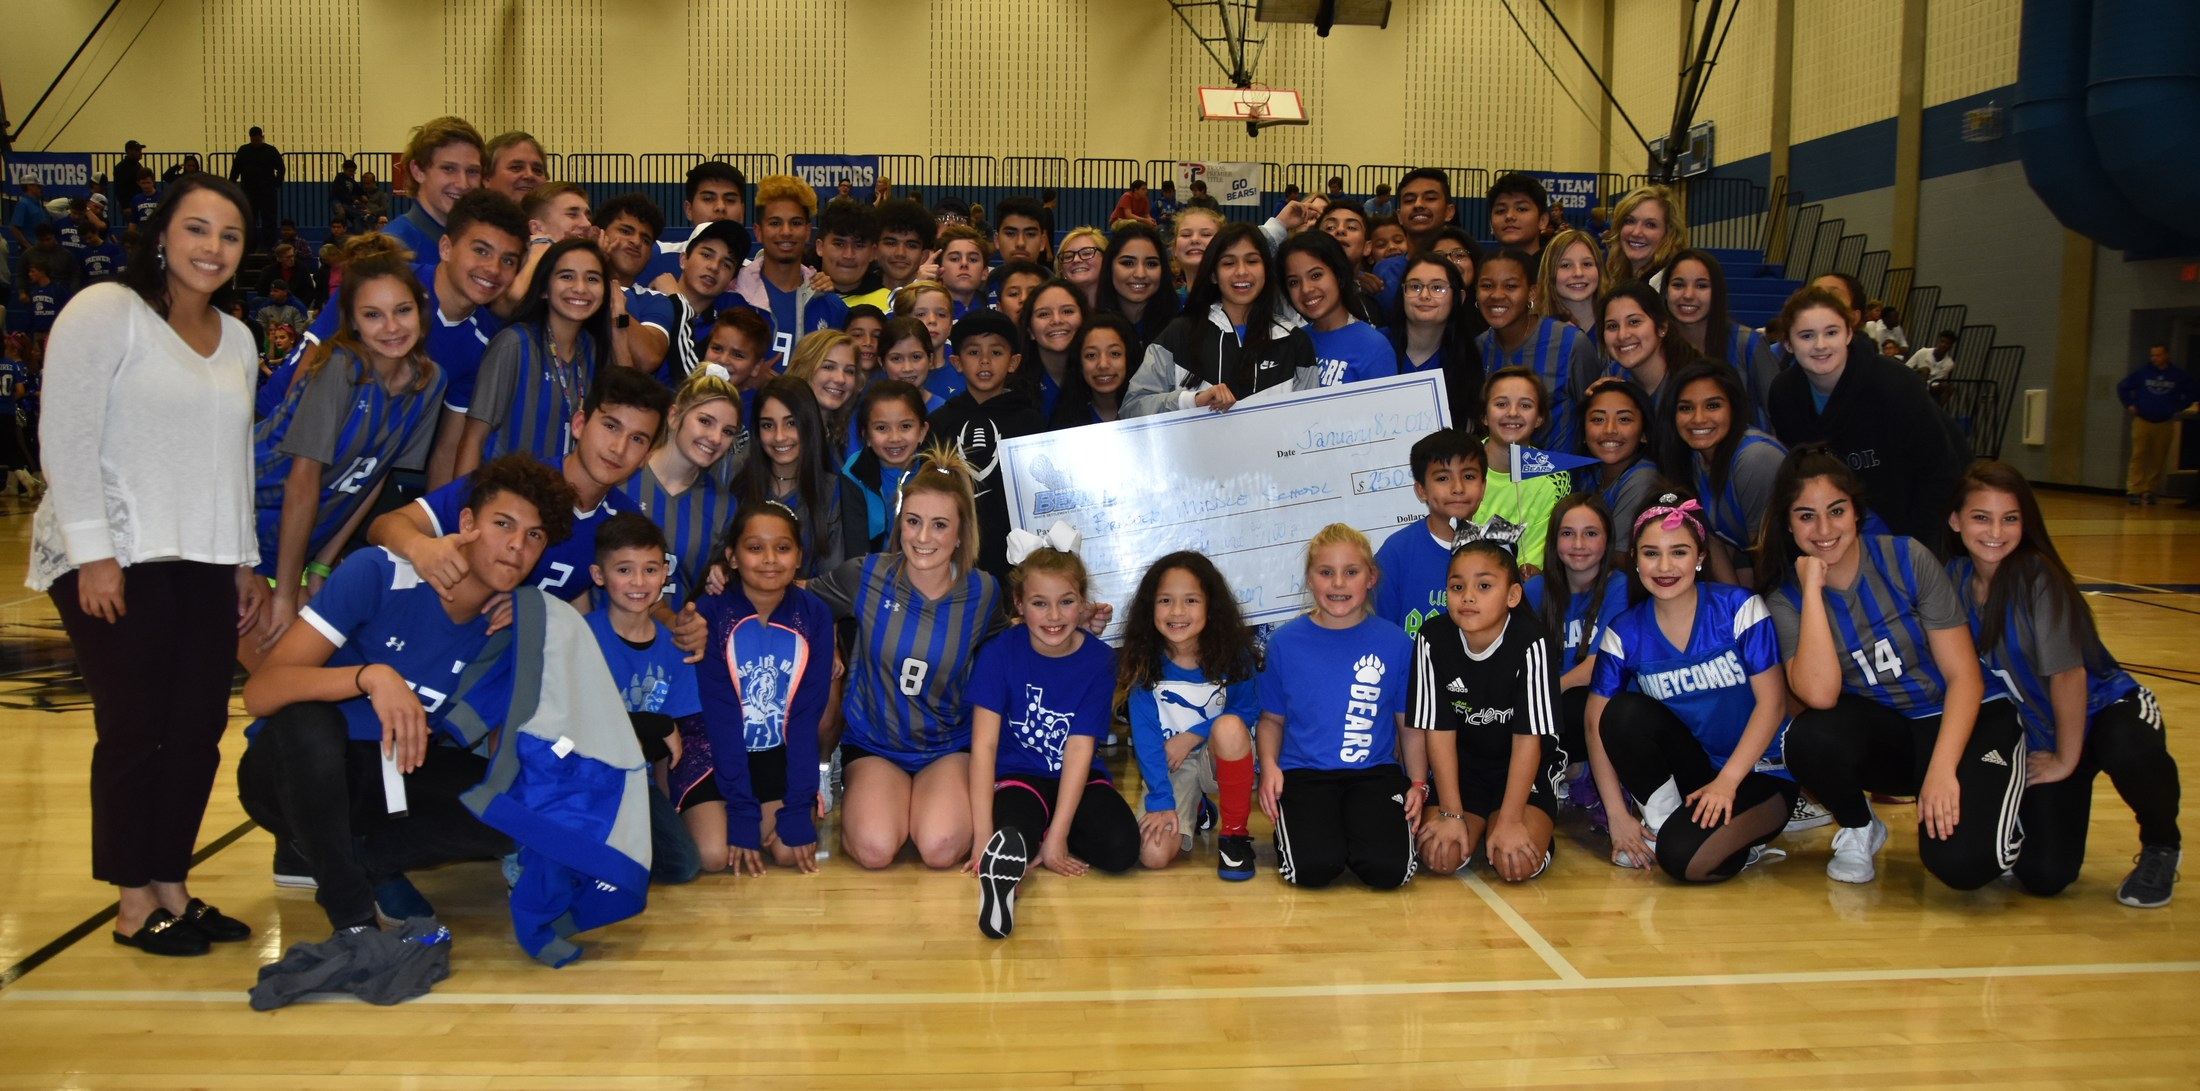 The Foundation awarded $250 to Brewer Middle School for winning the Soccer Kick Contest at the Winter Sports Rally on Jan. 8, 2018.